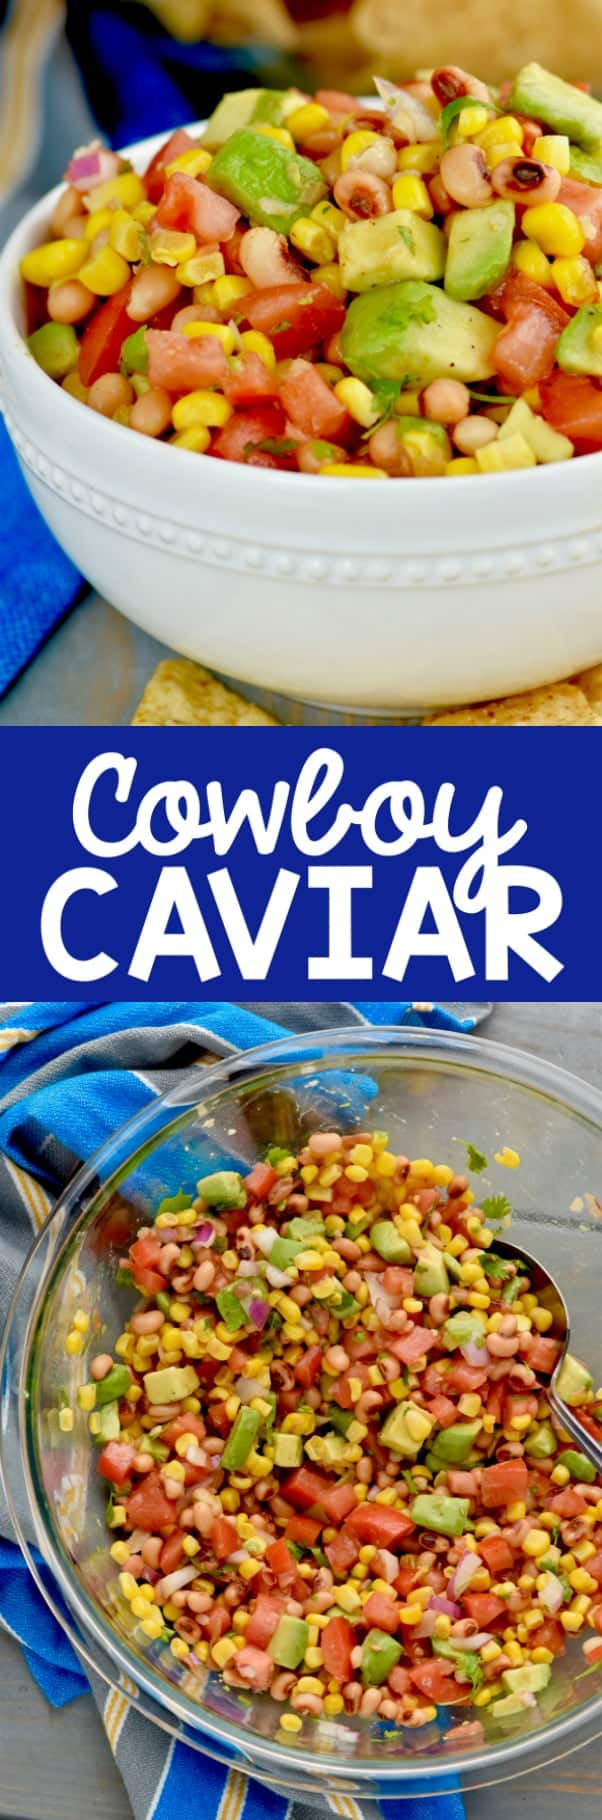 This Cowboy Caviar with it's black eyed peas and avocado chunks makes the perfect appetizer!